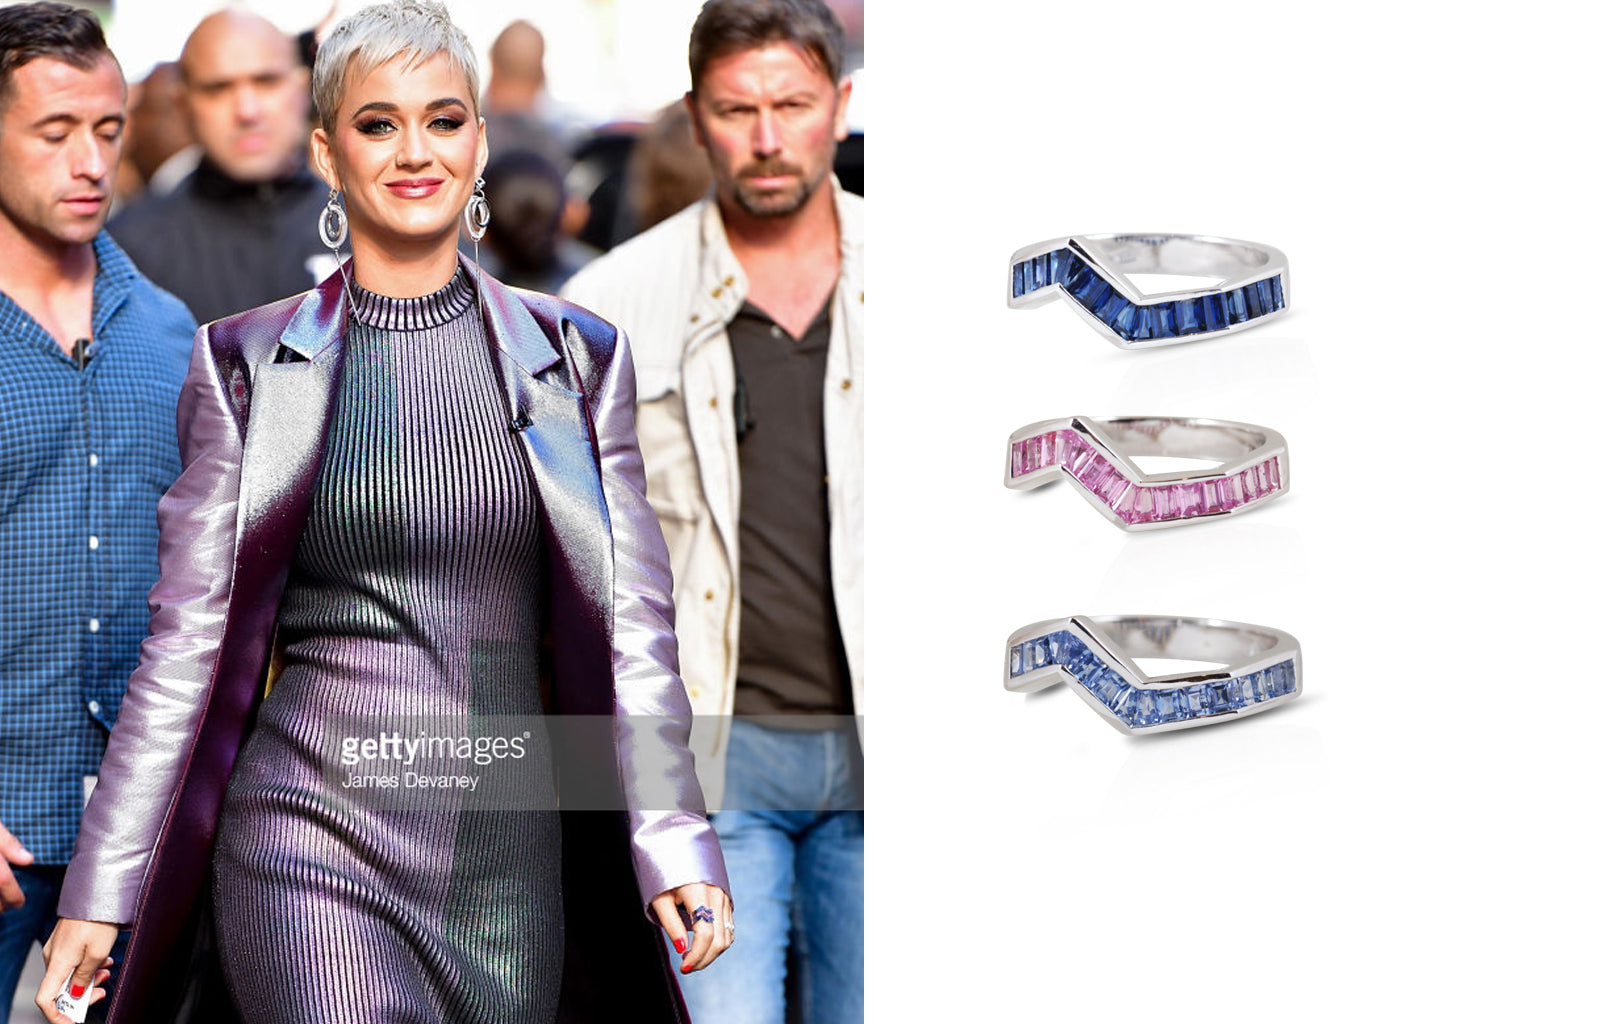 Origami Ziggy Stack Rings worn by Katy Perry Kavant Sharart